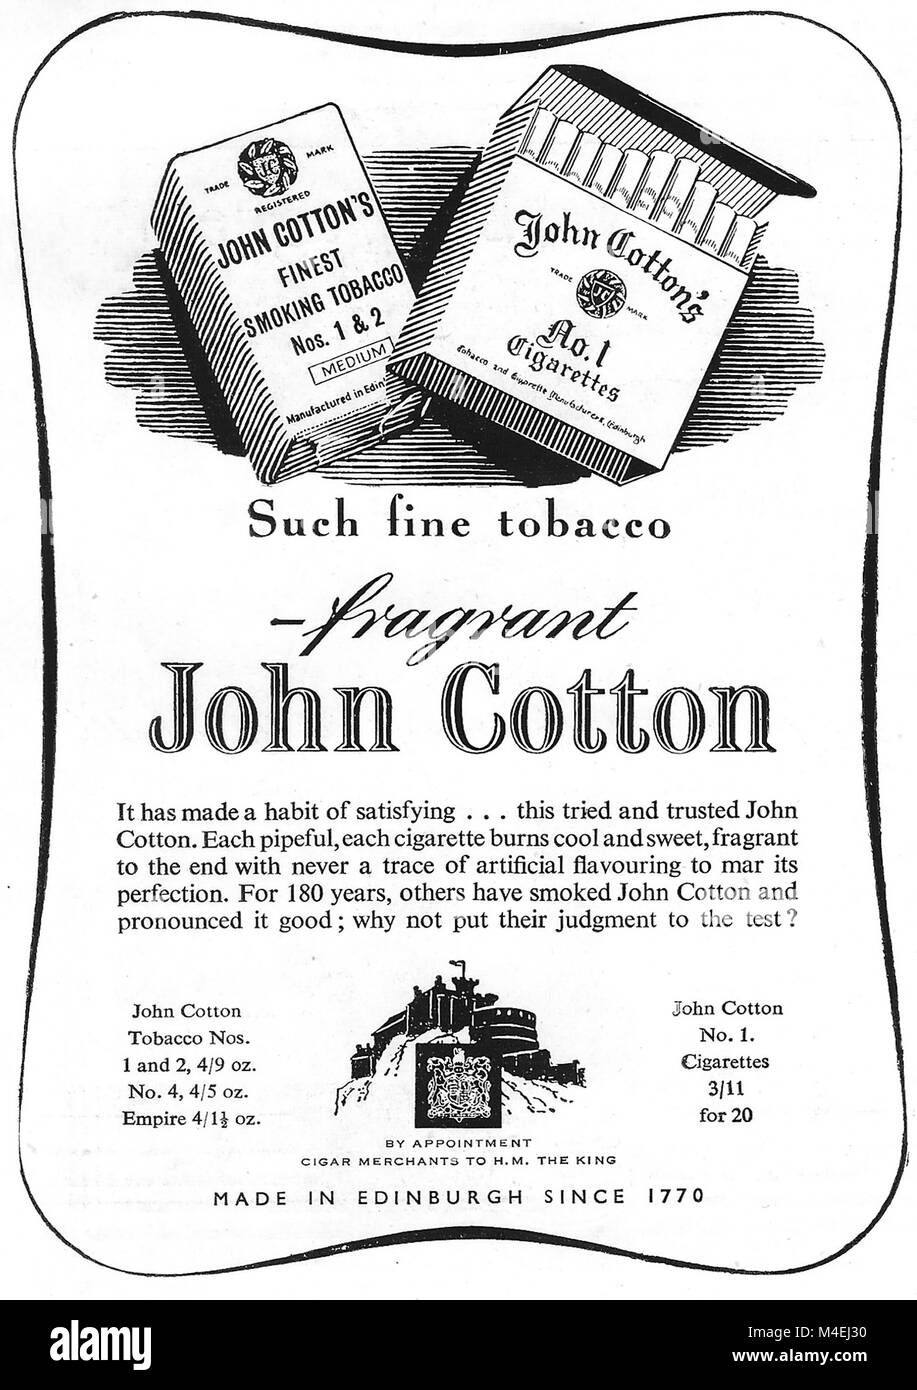 John Cotton fragrant cigarettes tobacco advert, advertising in Country Life magazine UK 1951 - Stock Image